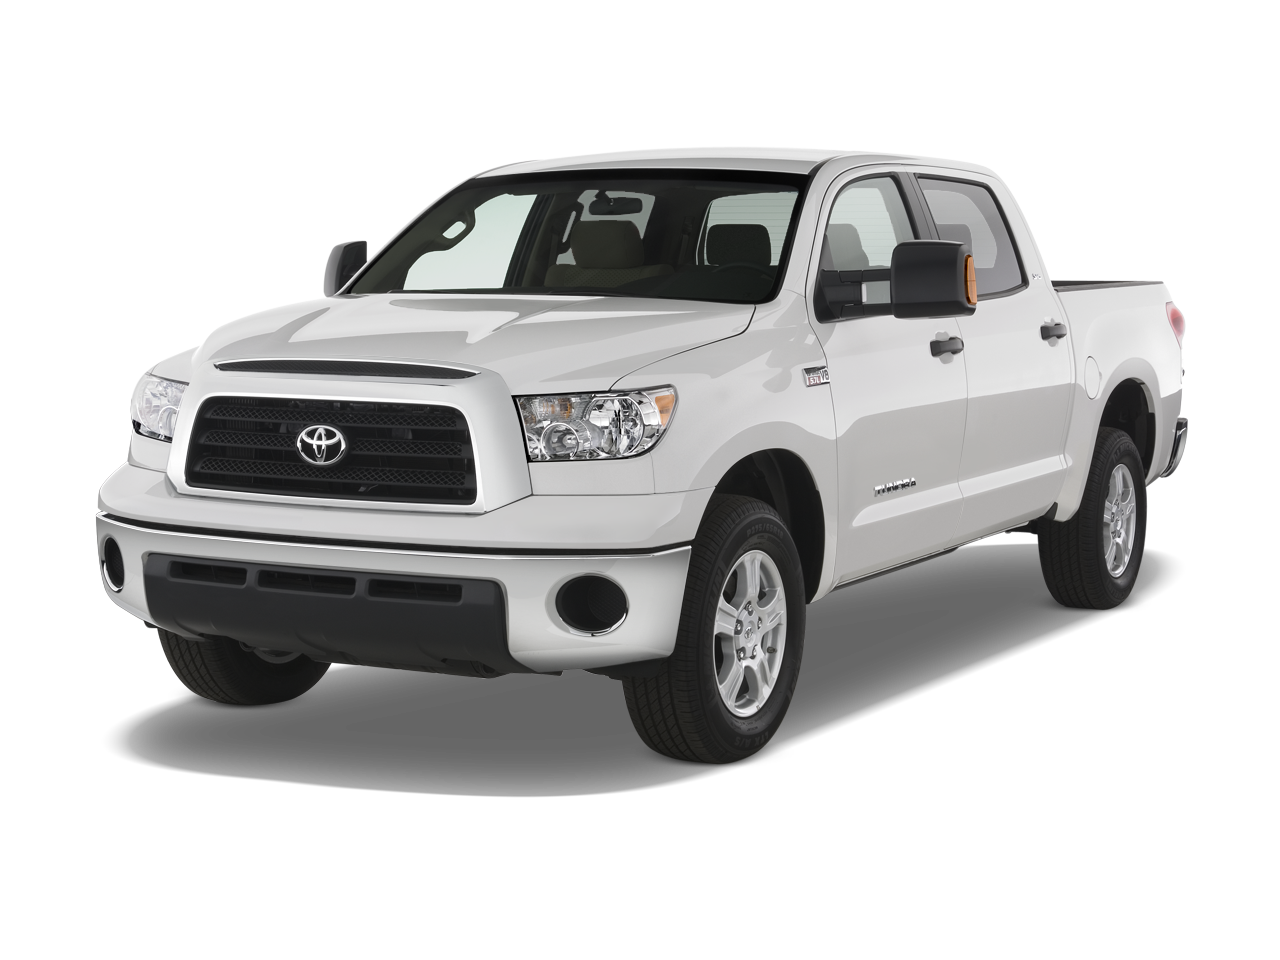 recall central toyota recalling 2007 2011 tundra rhd. Black Bedroom Furniture Sets. Home Design Ideas